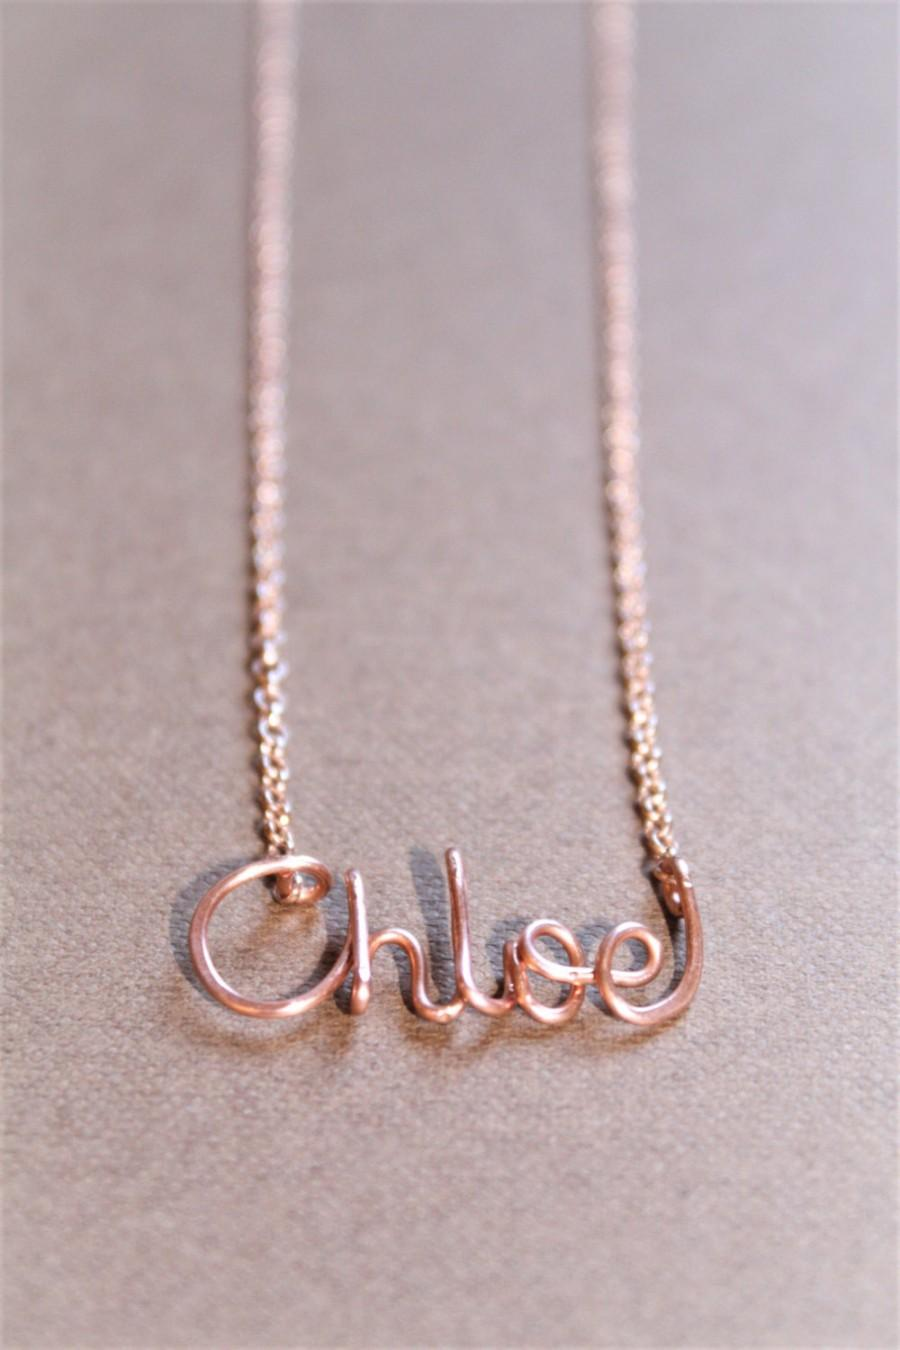 chloe gift new rose name pendant charm dainty mom necklace gold baby tiny media girl personalized bridesmaid